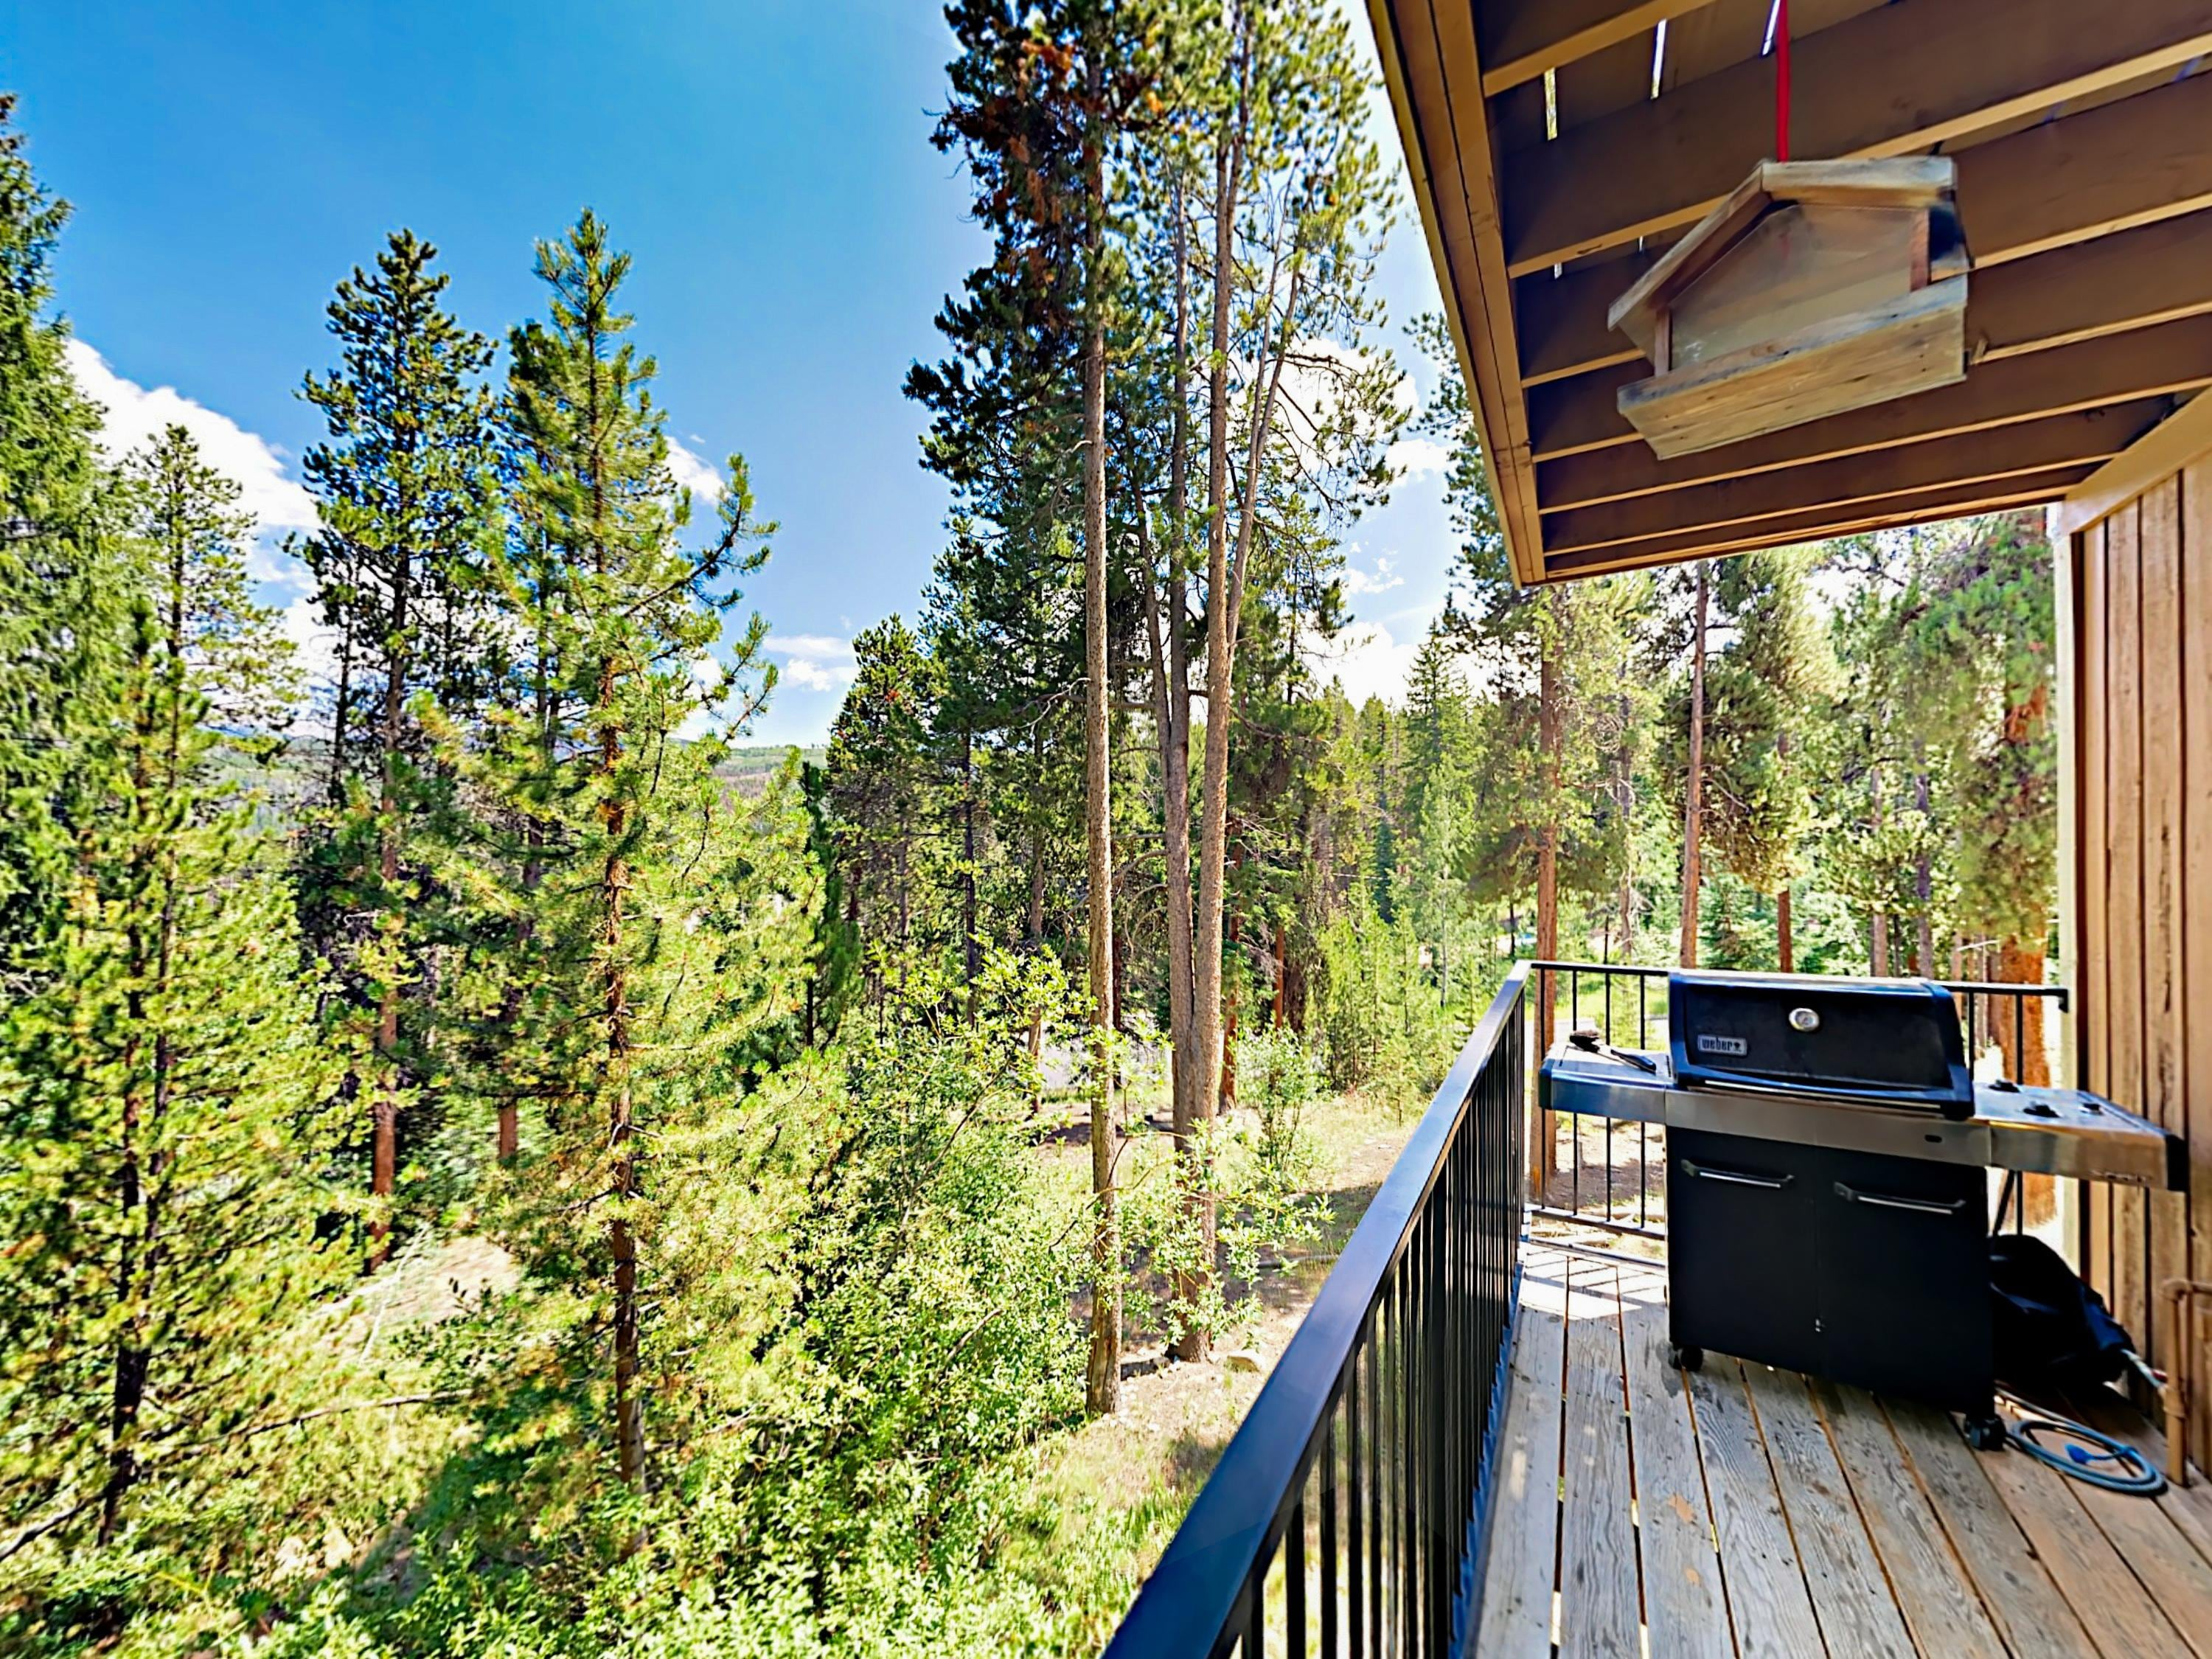 Enjoy the mountain view from the private balcony, complete with a grill.